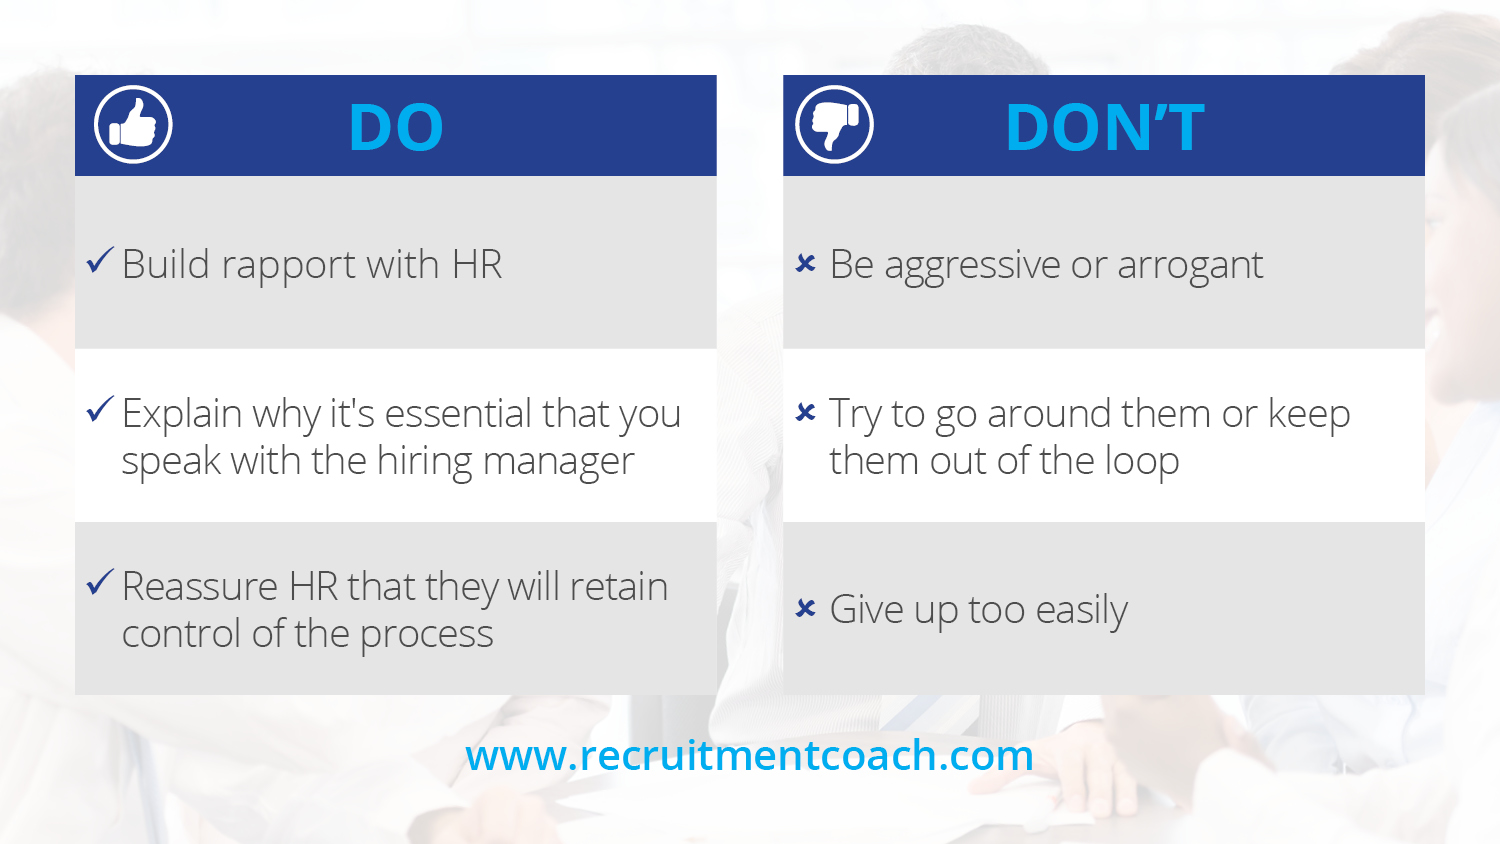 Recruitment-Coach-Working-with-HR-Dos-Donts